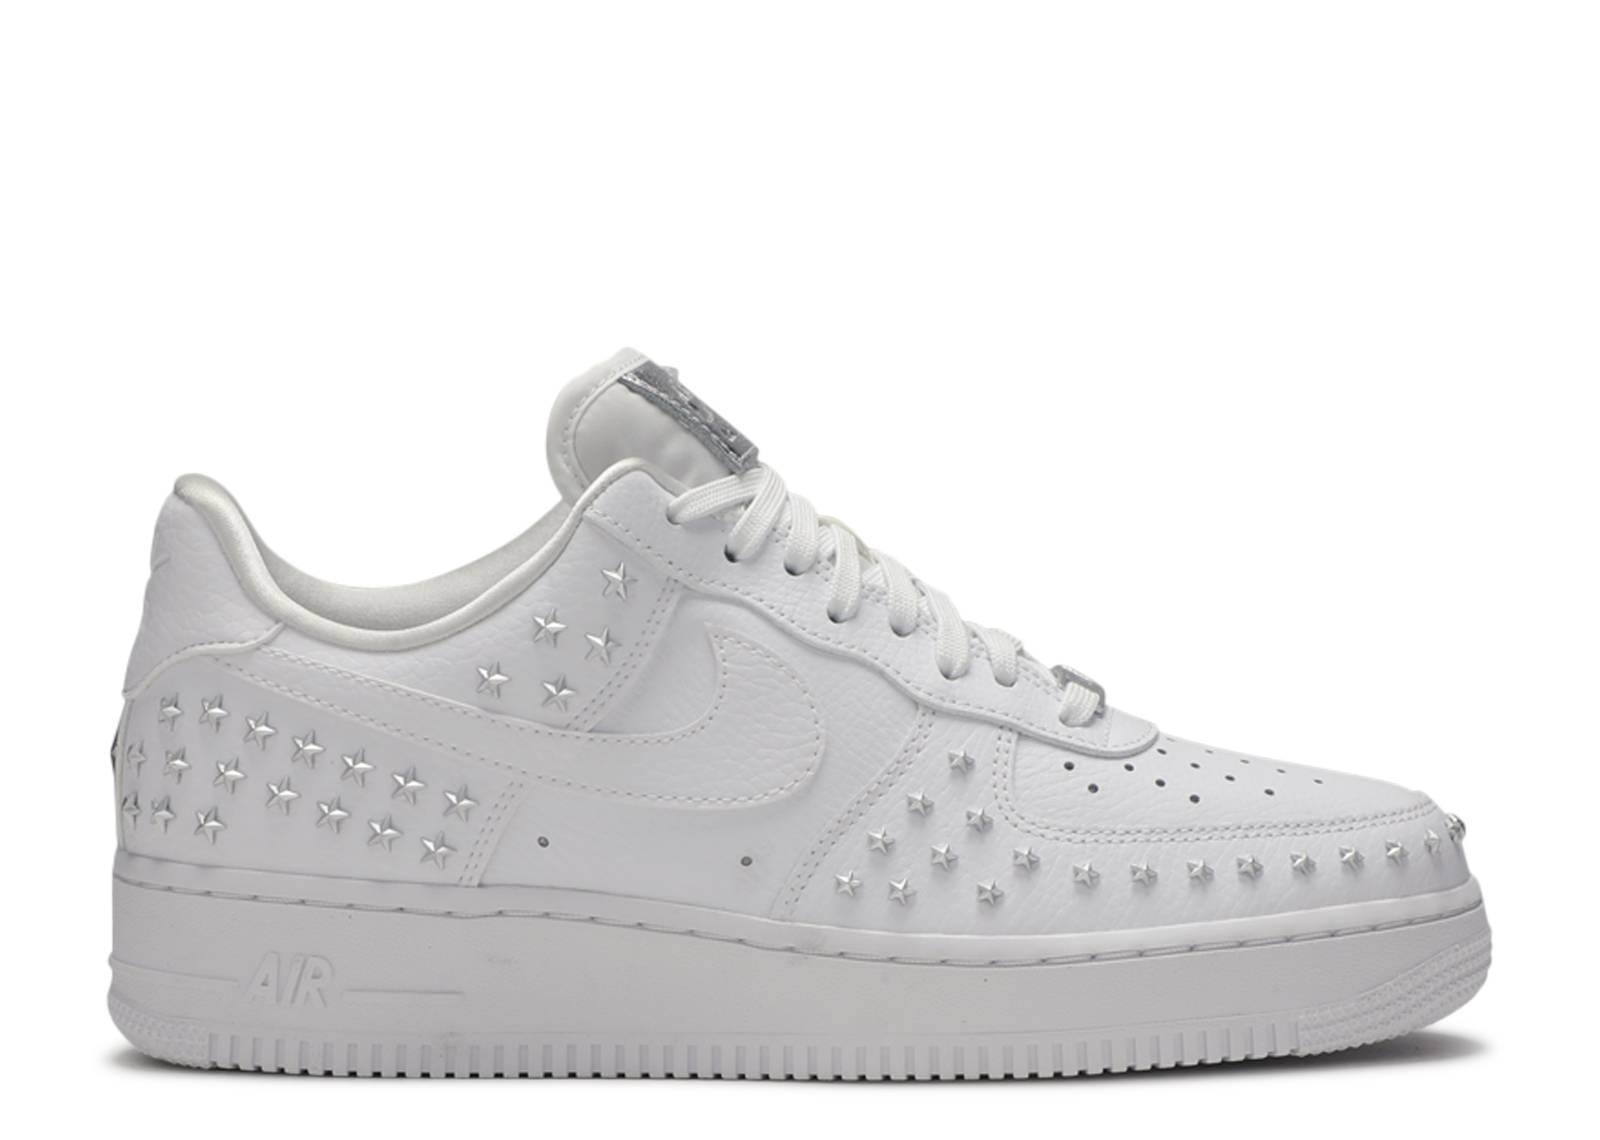 wmns air force 1 '07 XX low